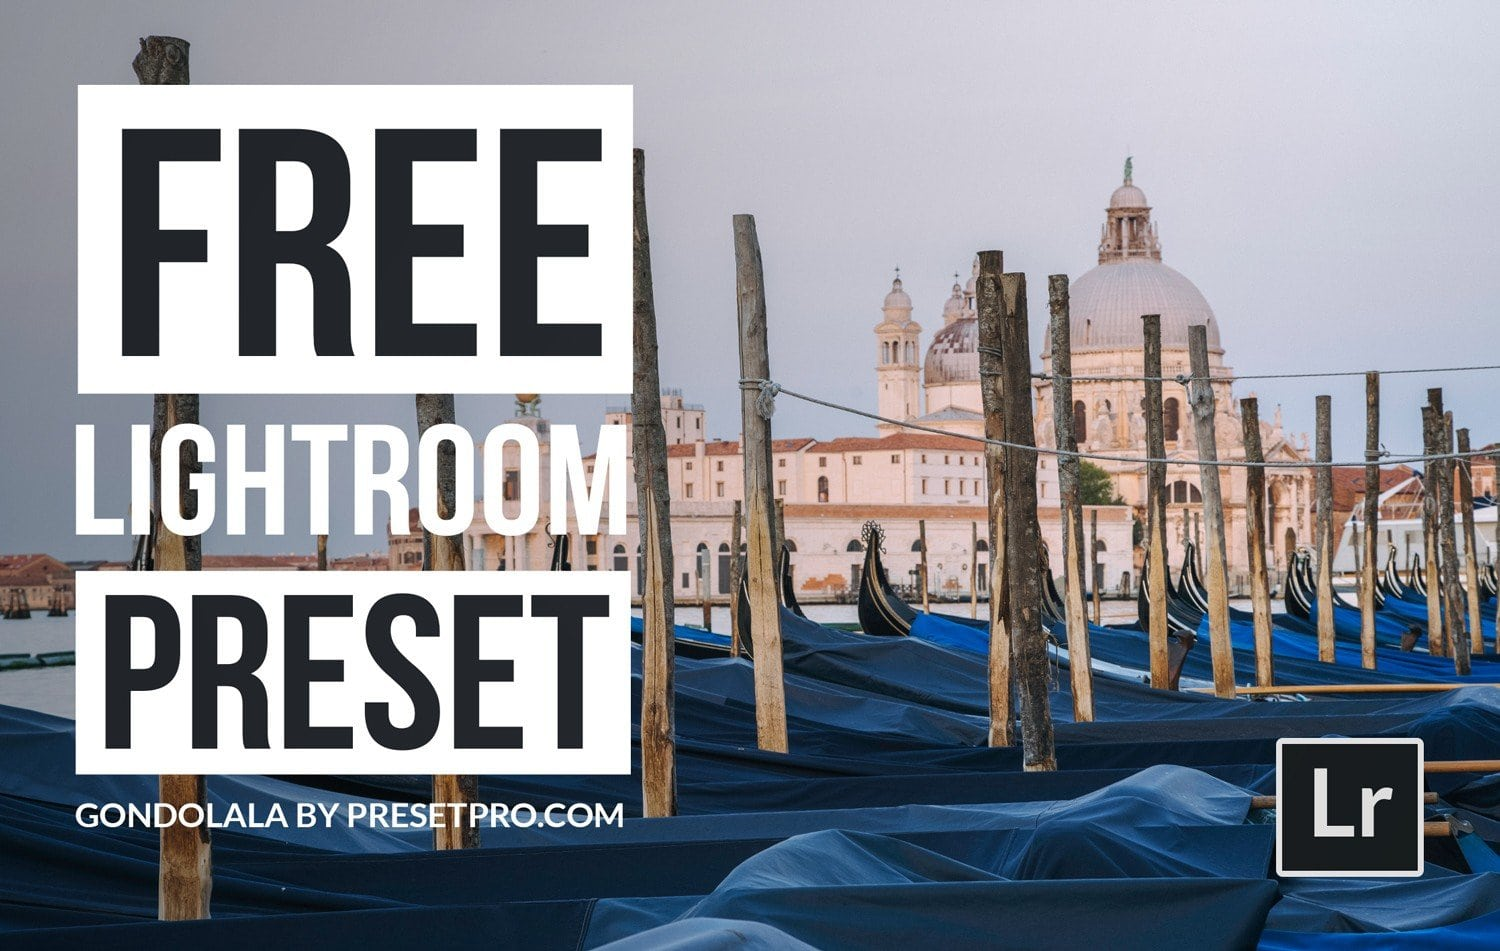 Free-Lightroom-Preset-Gondolala-Cover